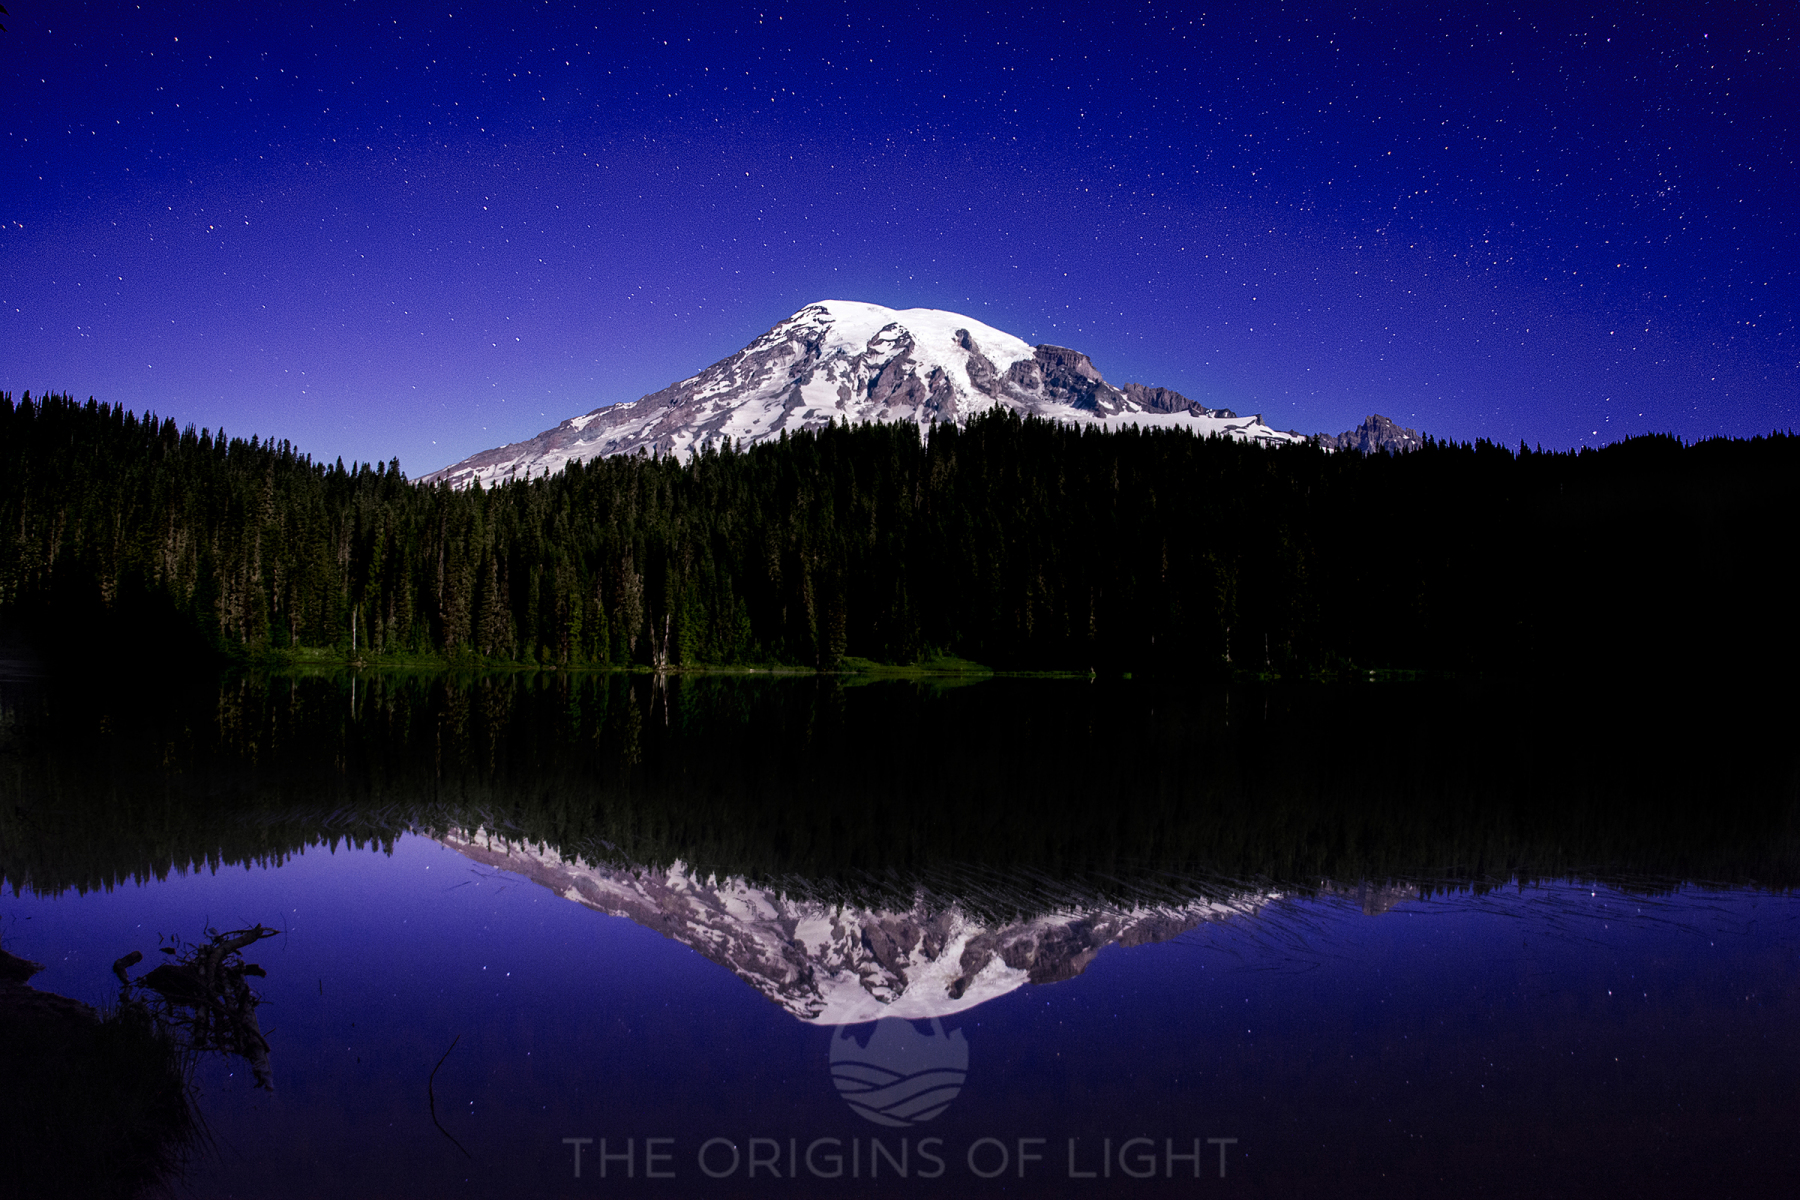 Mt Rainier under a stary sky, reflected in Reflection Lake